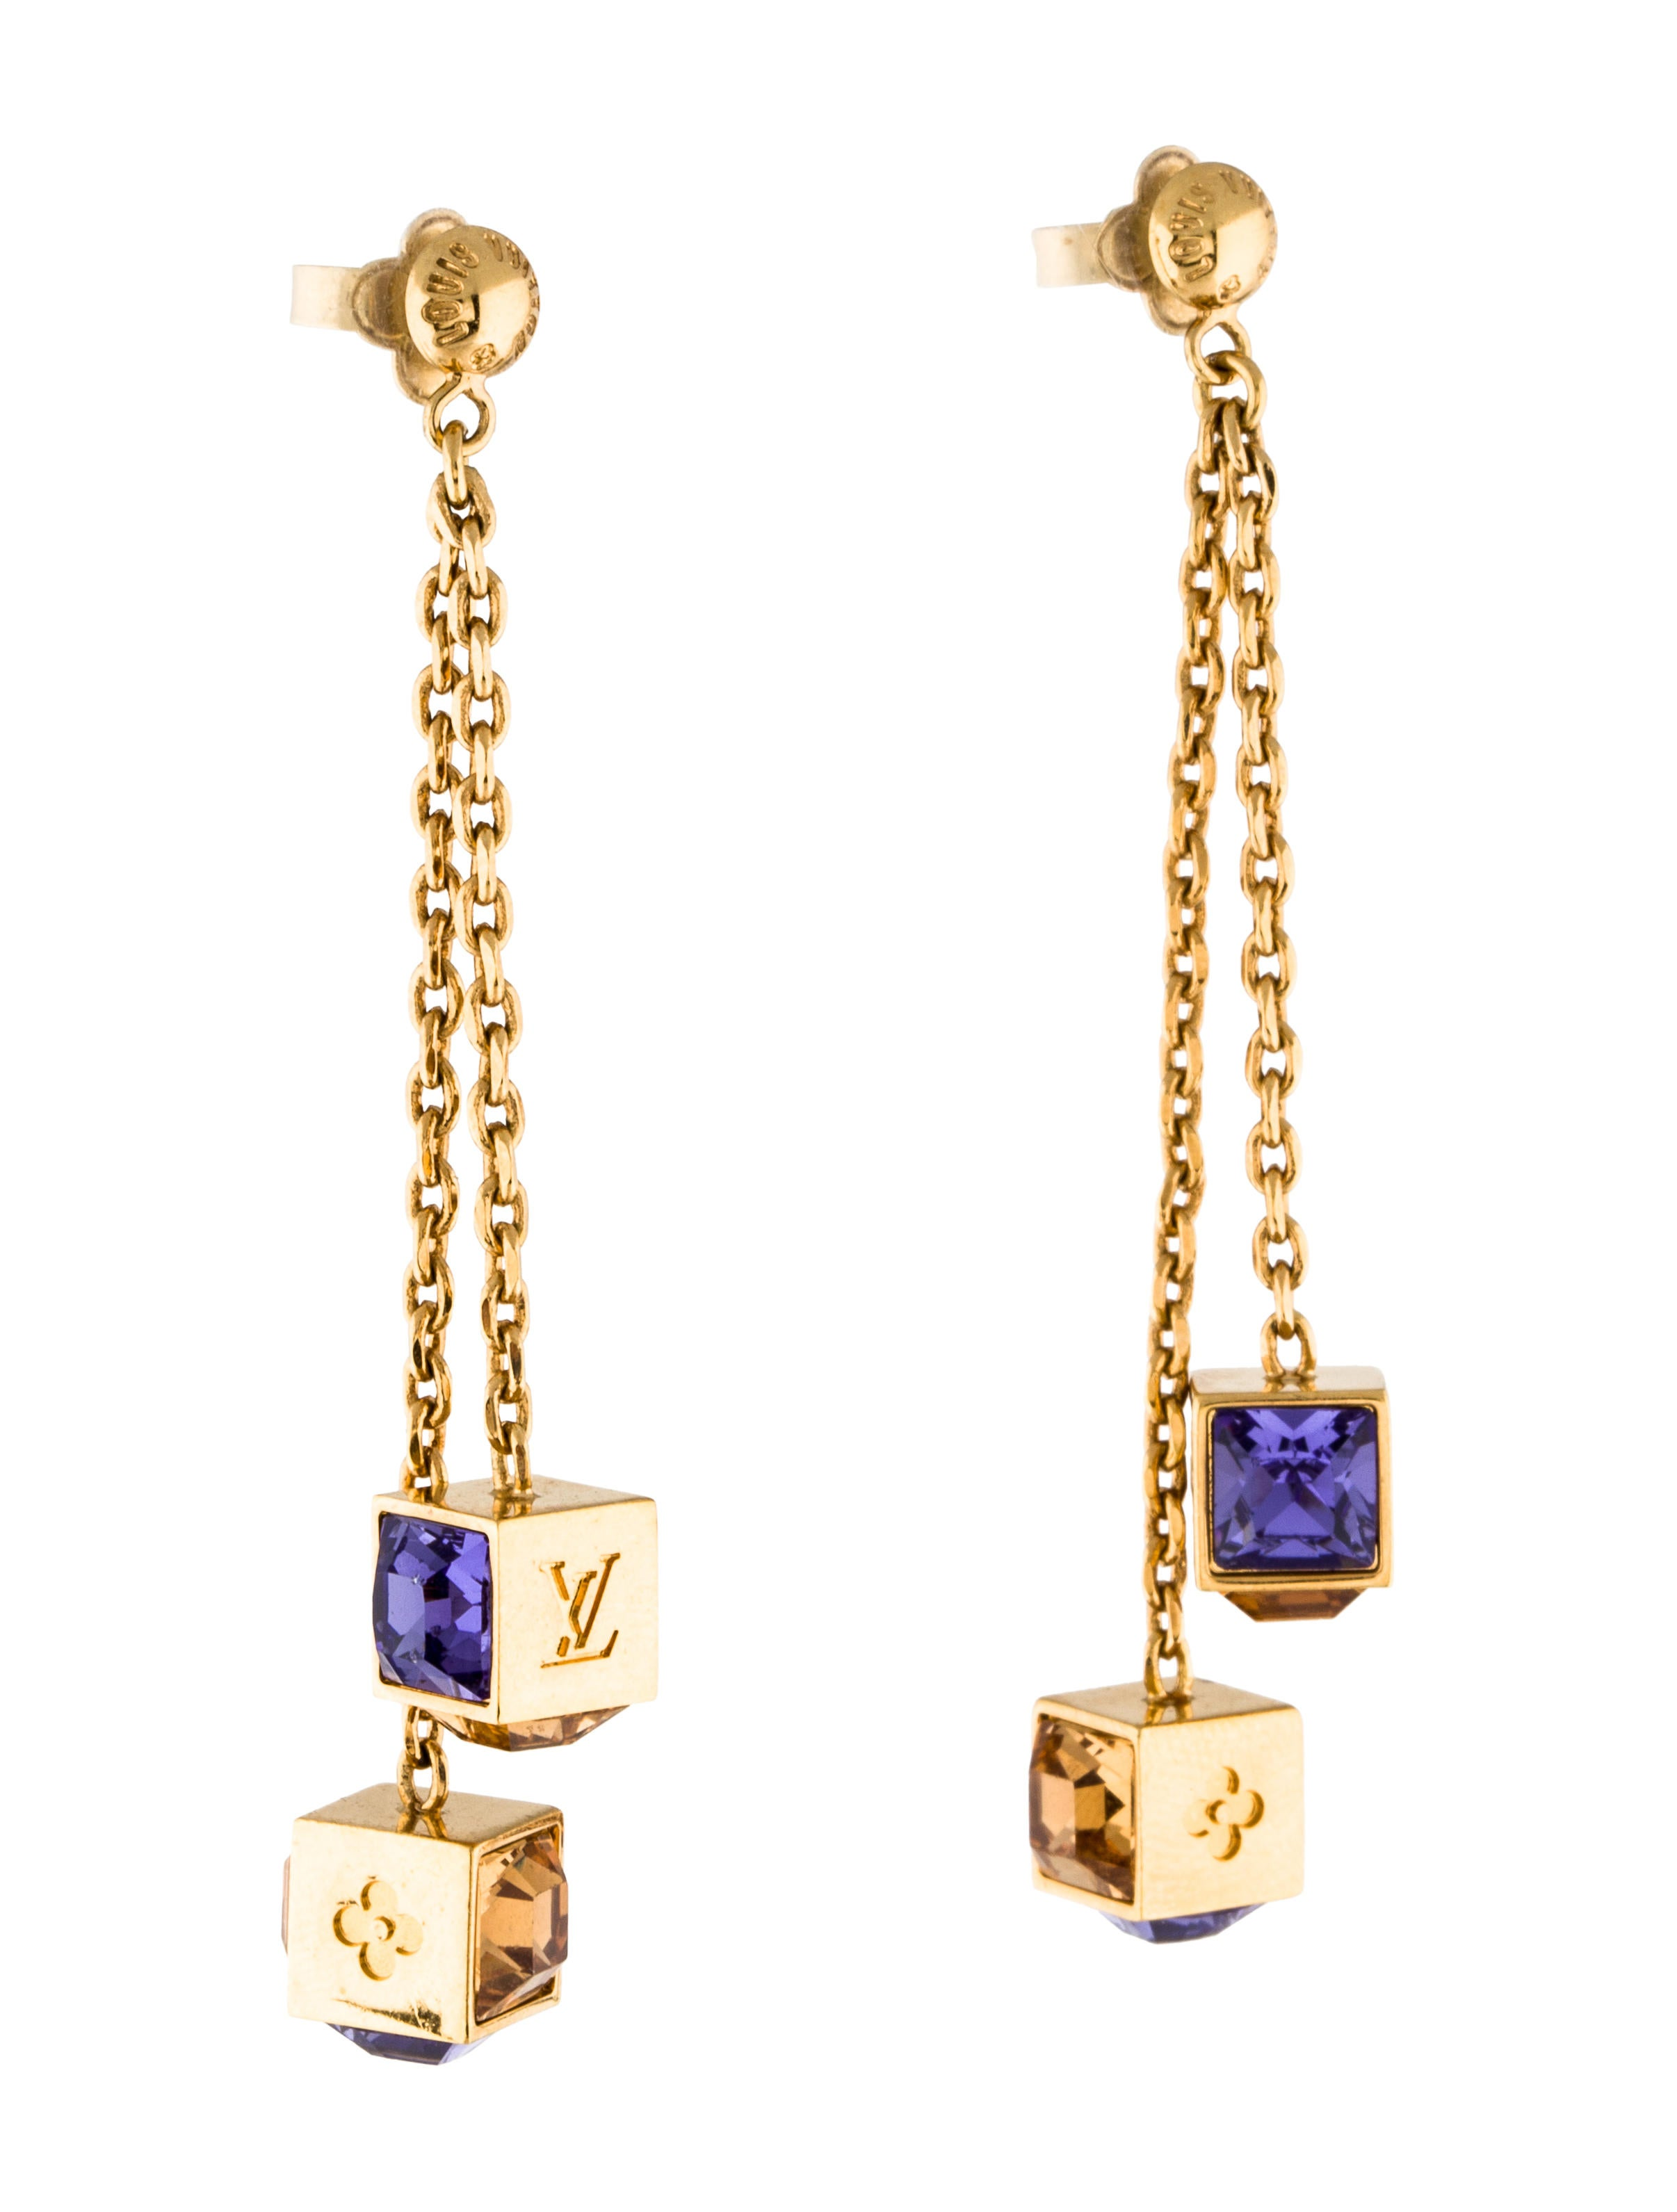 louis vuitton earrings mens louis vuitton gamble earrings earrings lou140246 the 3902